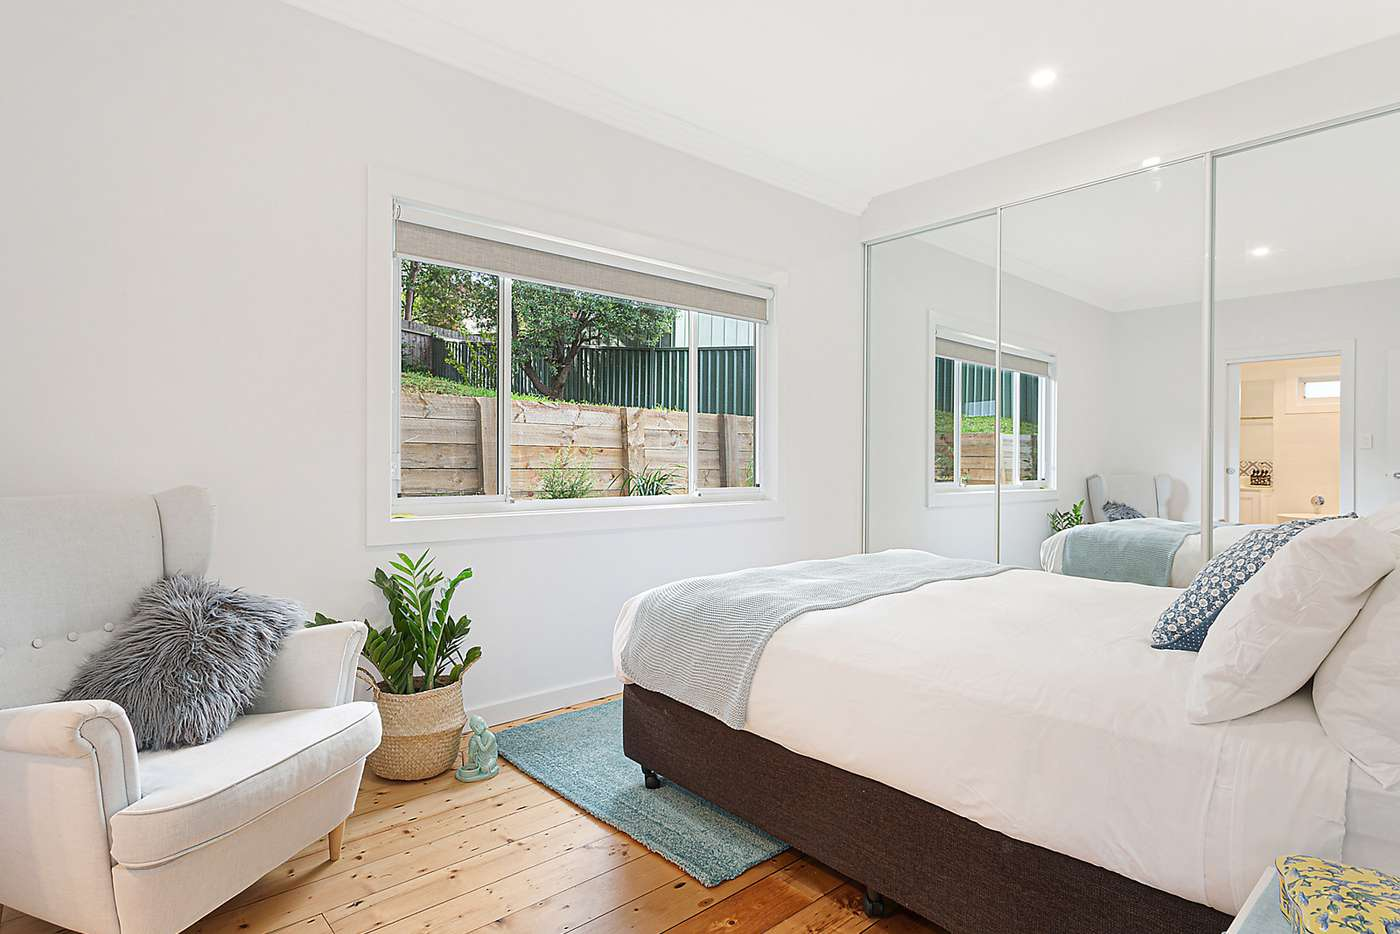 Sixth view of Homely house listing, 350 Gladstone Avenue, Mount Saint Thomas NSW 2500